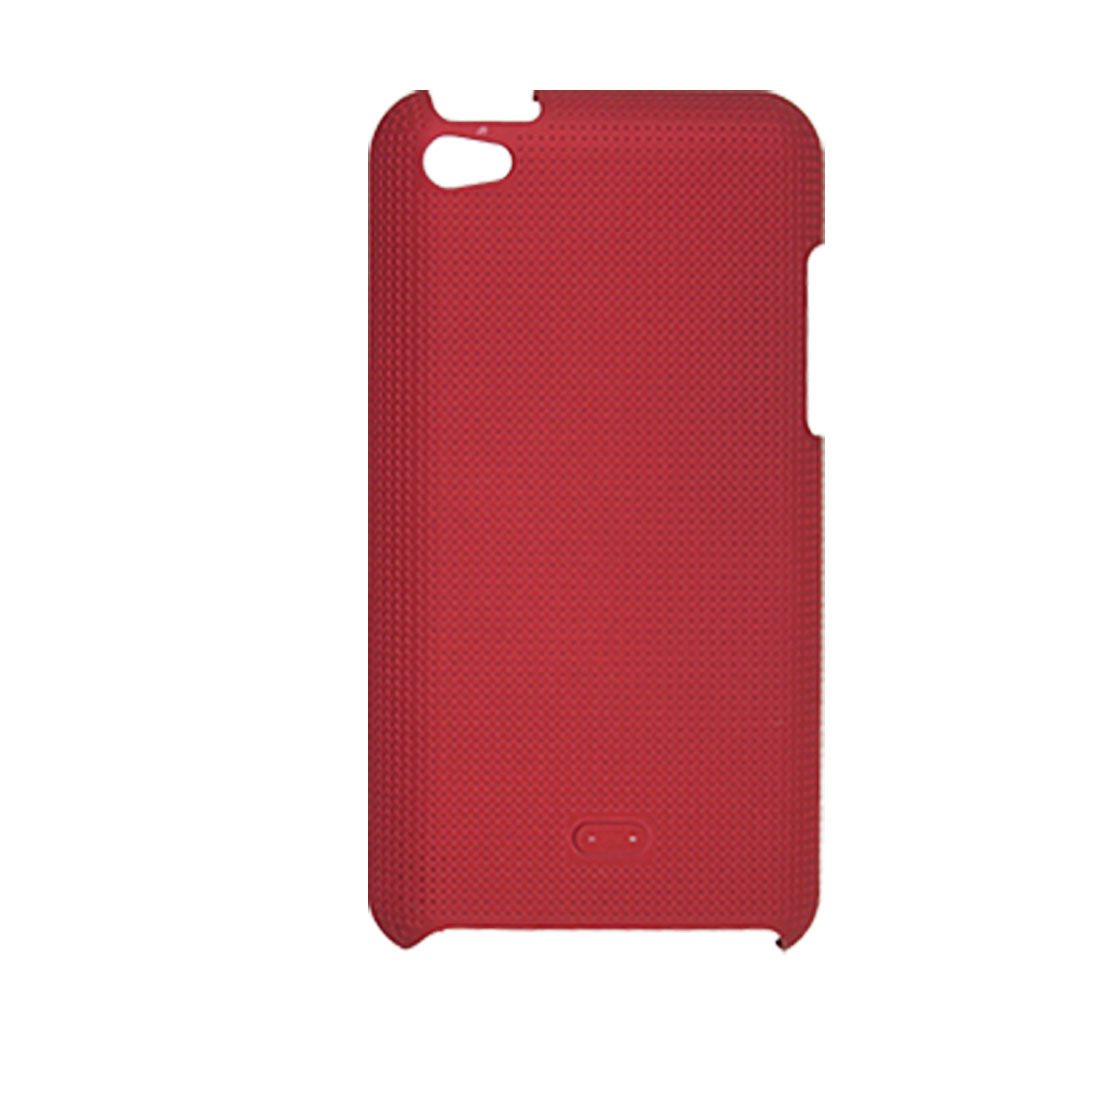 Red Nonslip Back Shell Protector for iPod Touch 4G